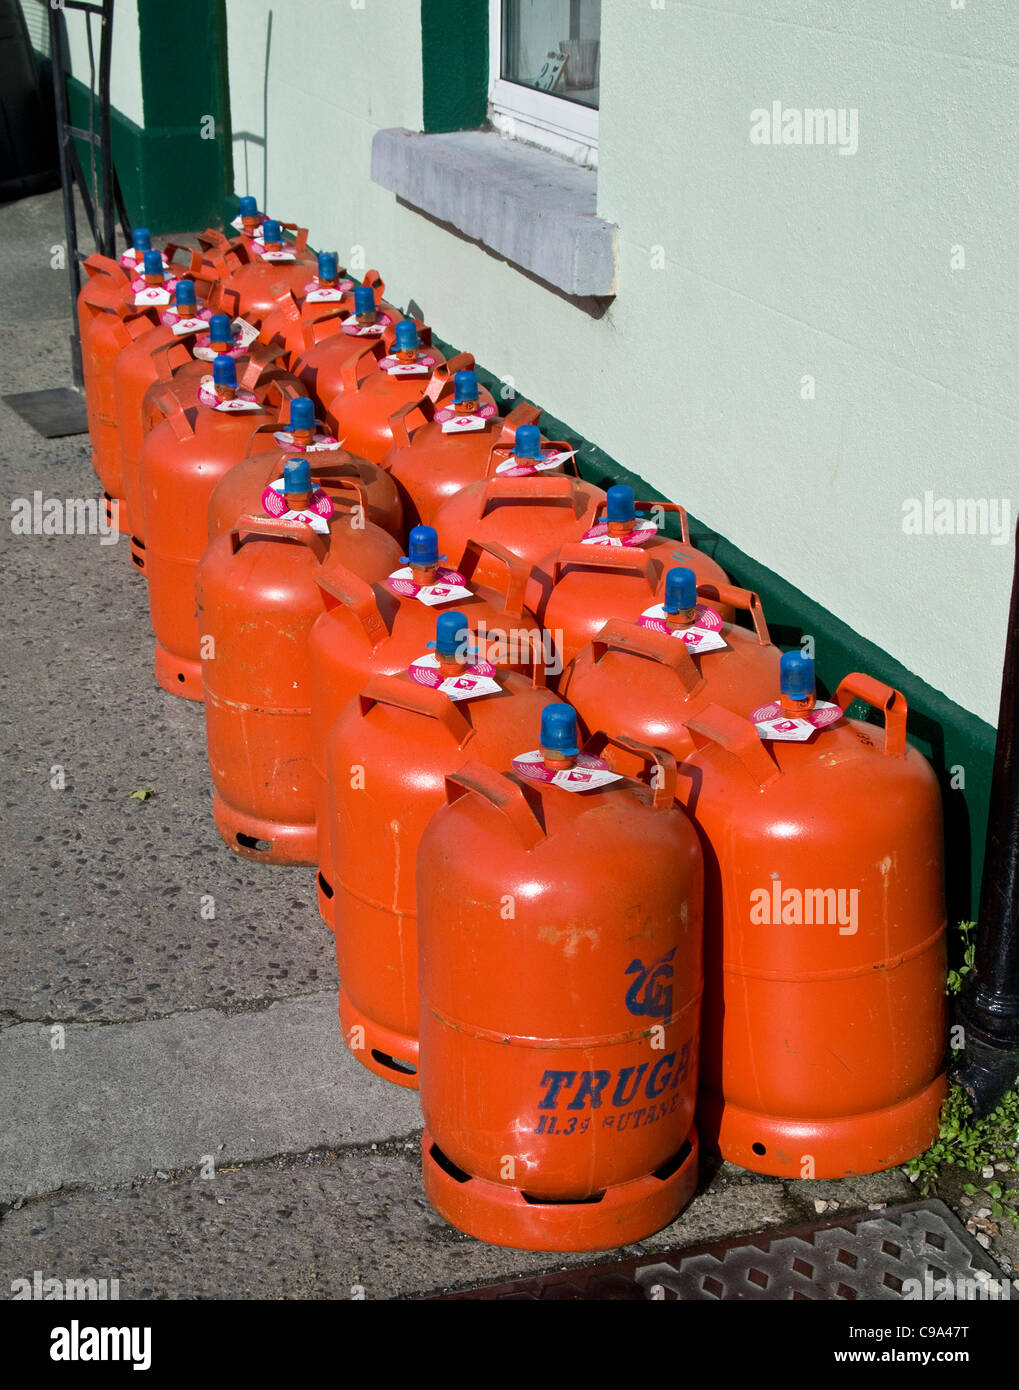 Domestic gas canisters on sale outside a hardware shop in Skerries, county Dublin, Ireland - Stock Image